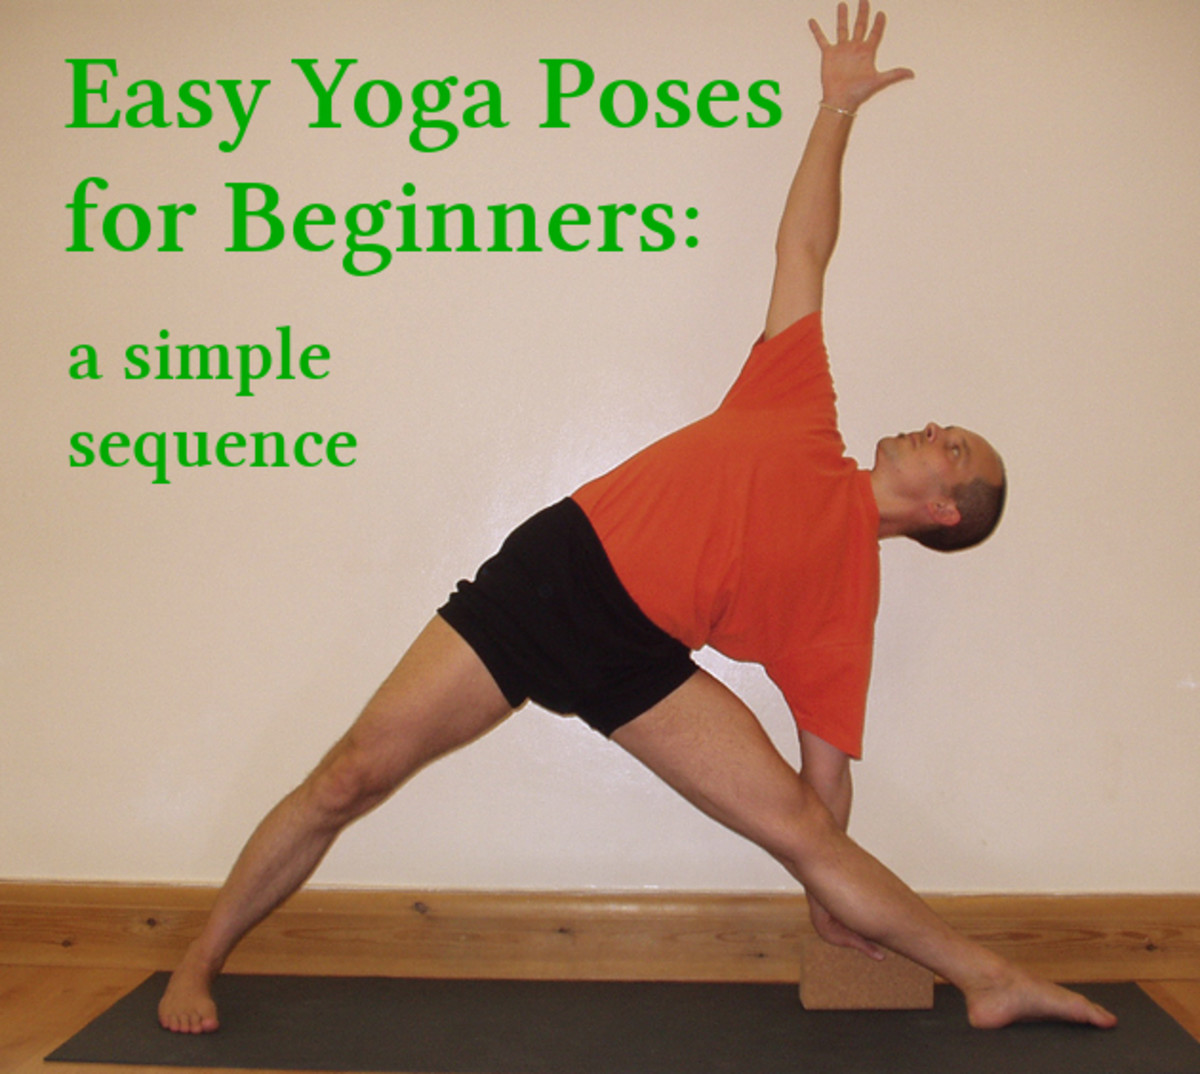 Easy Yoga Poses for Beginners and Home Practice